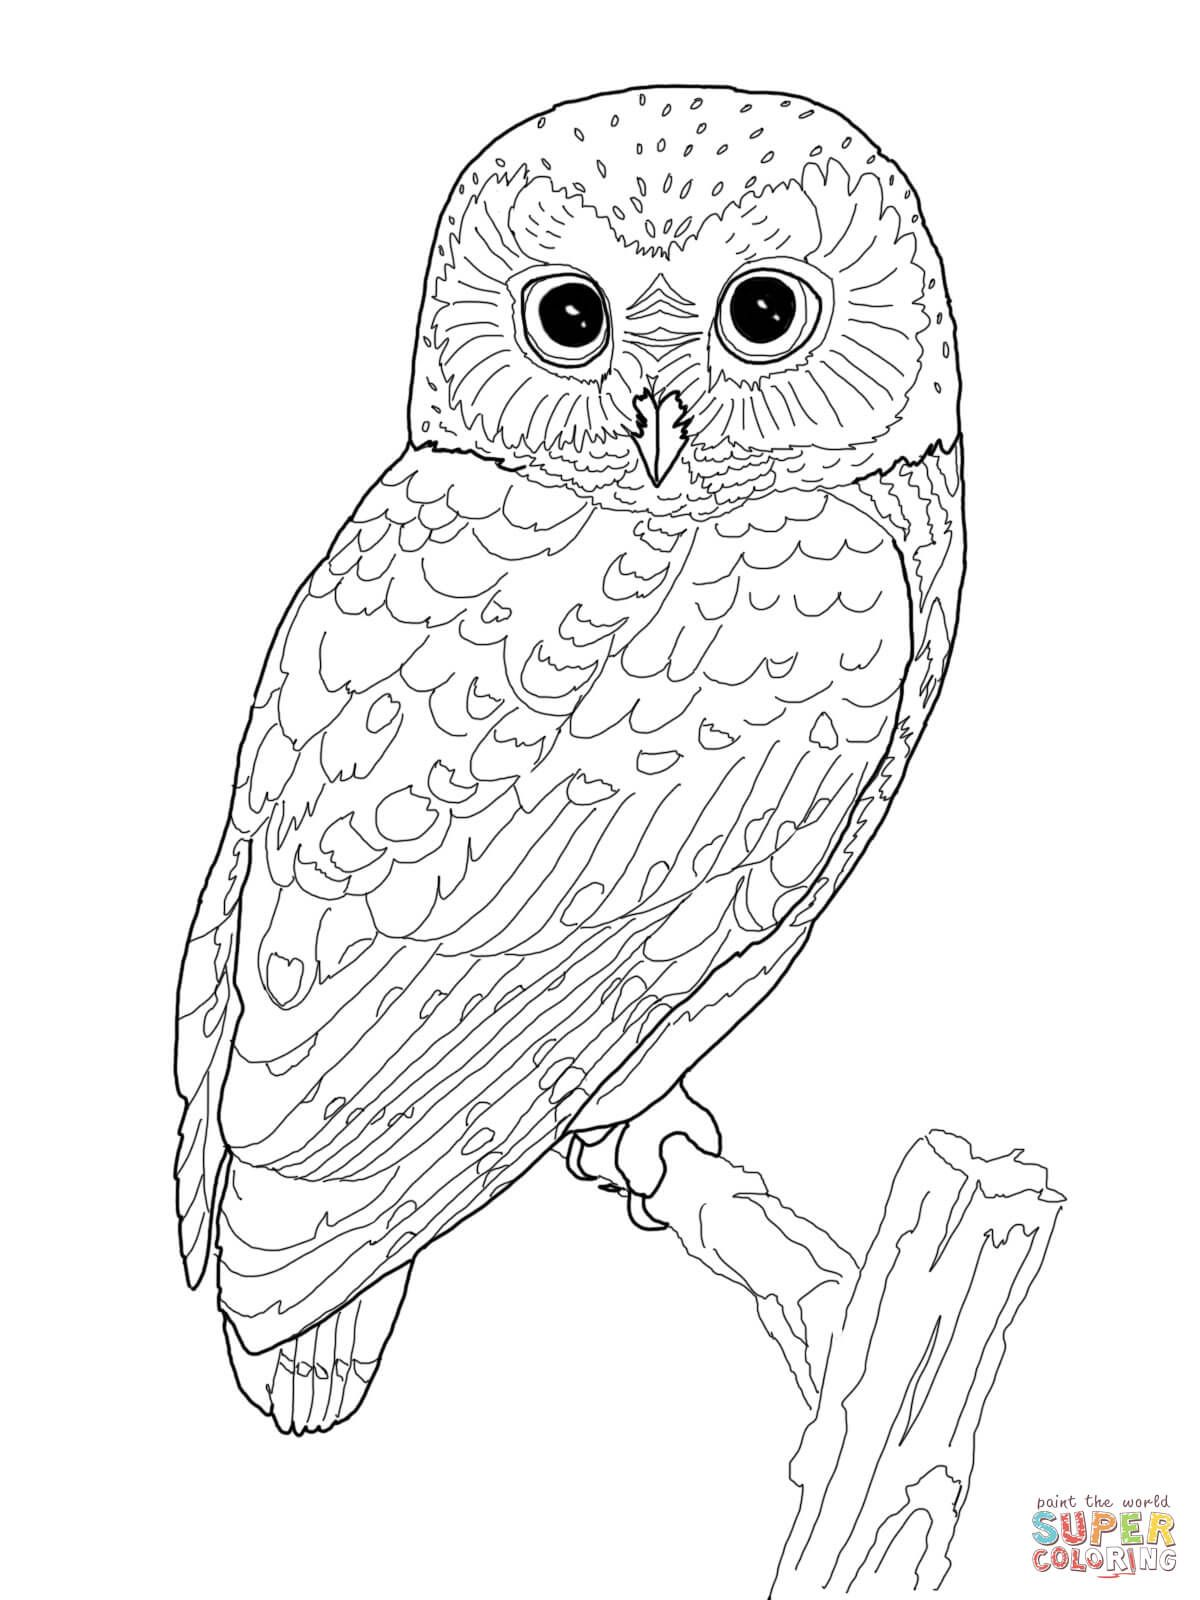 Pin von Małgorzata Kitka auf Coloring pages - Owls | Pinterest